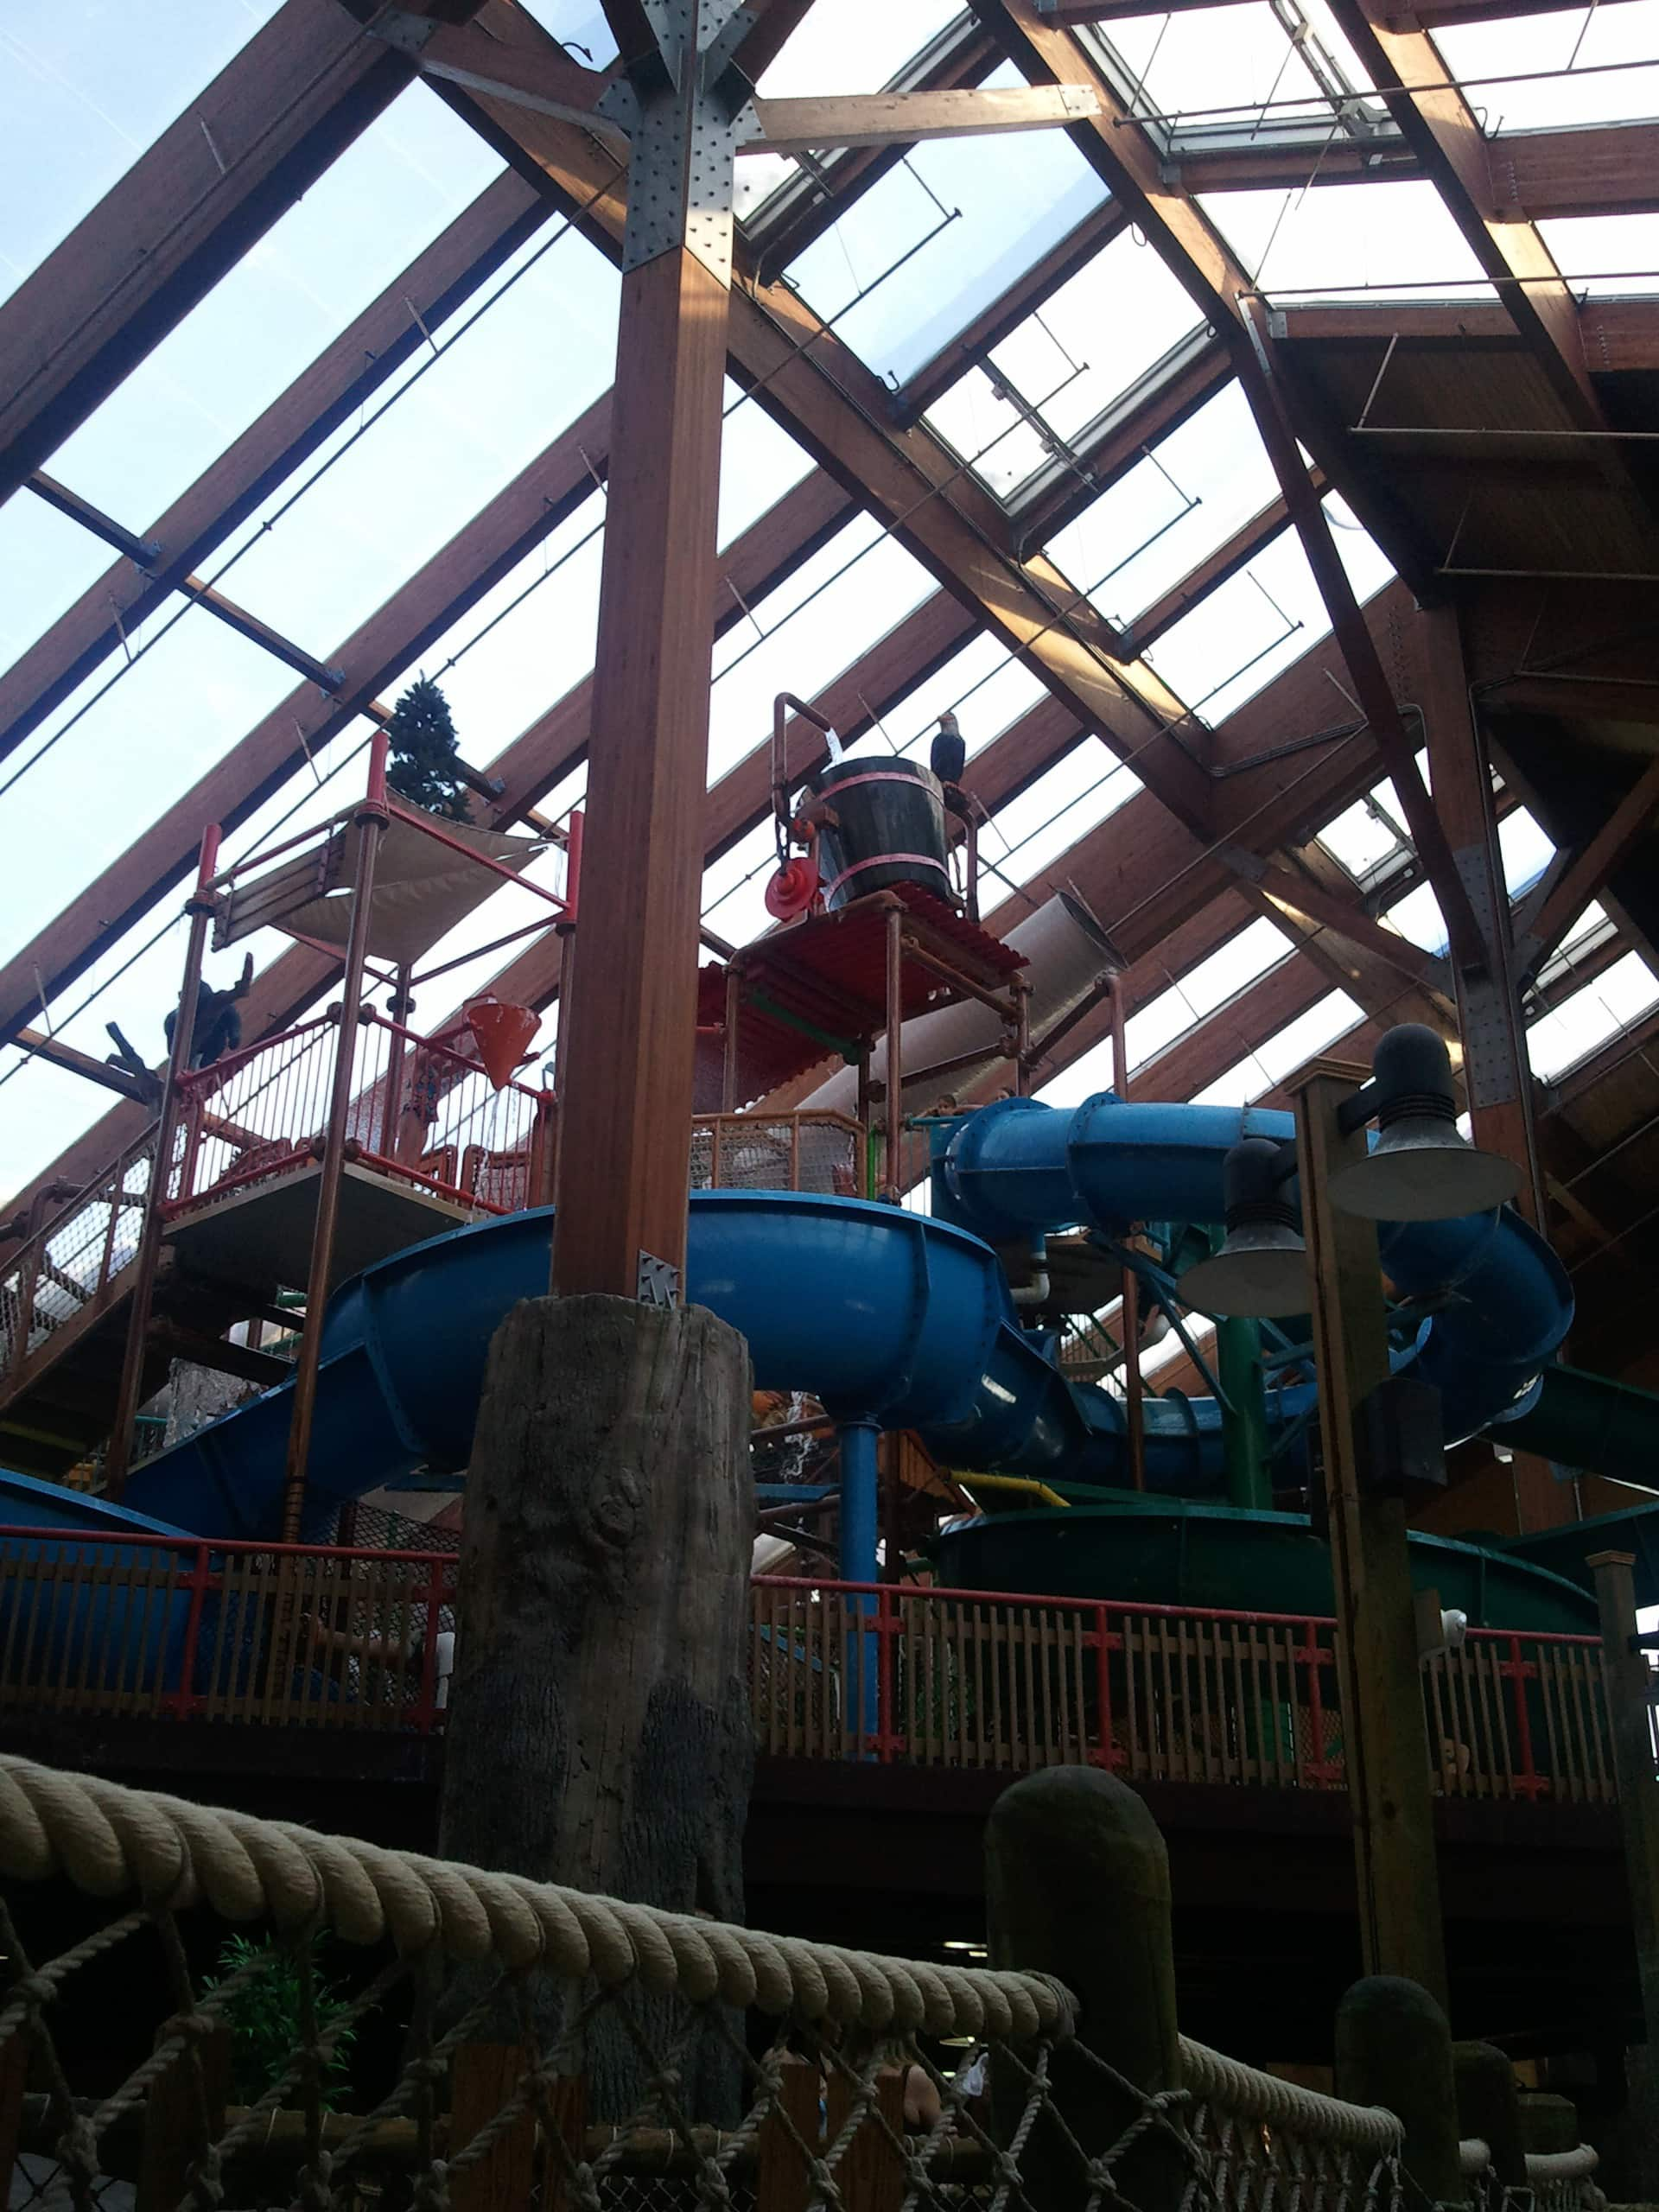 A maze of water slides, Great Escape White Water Bay Indoor Water Park